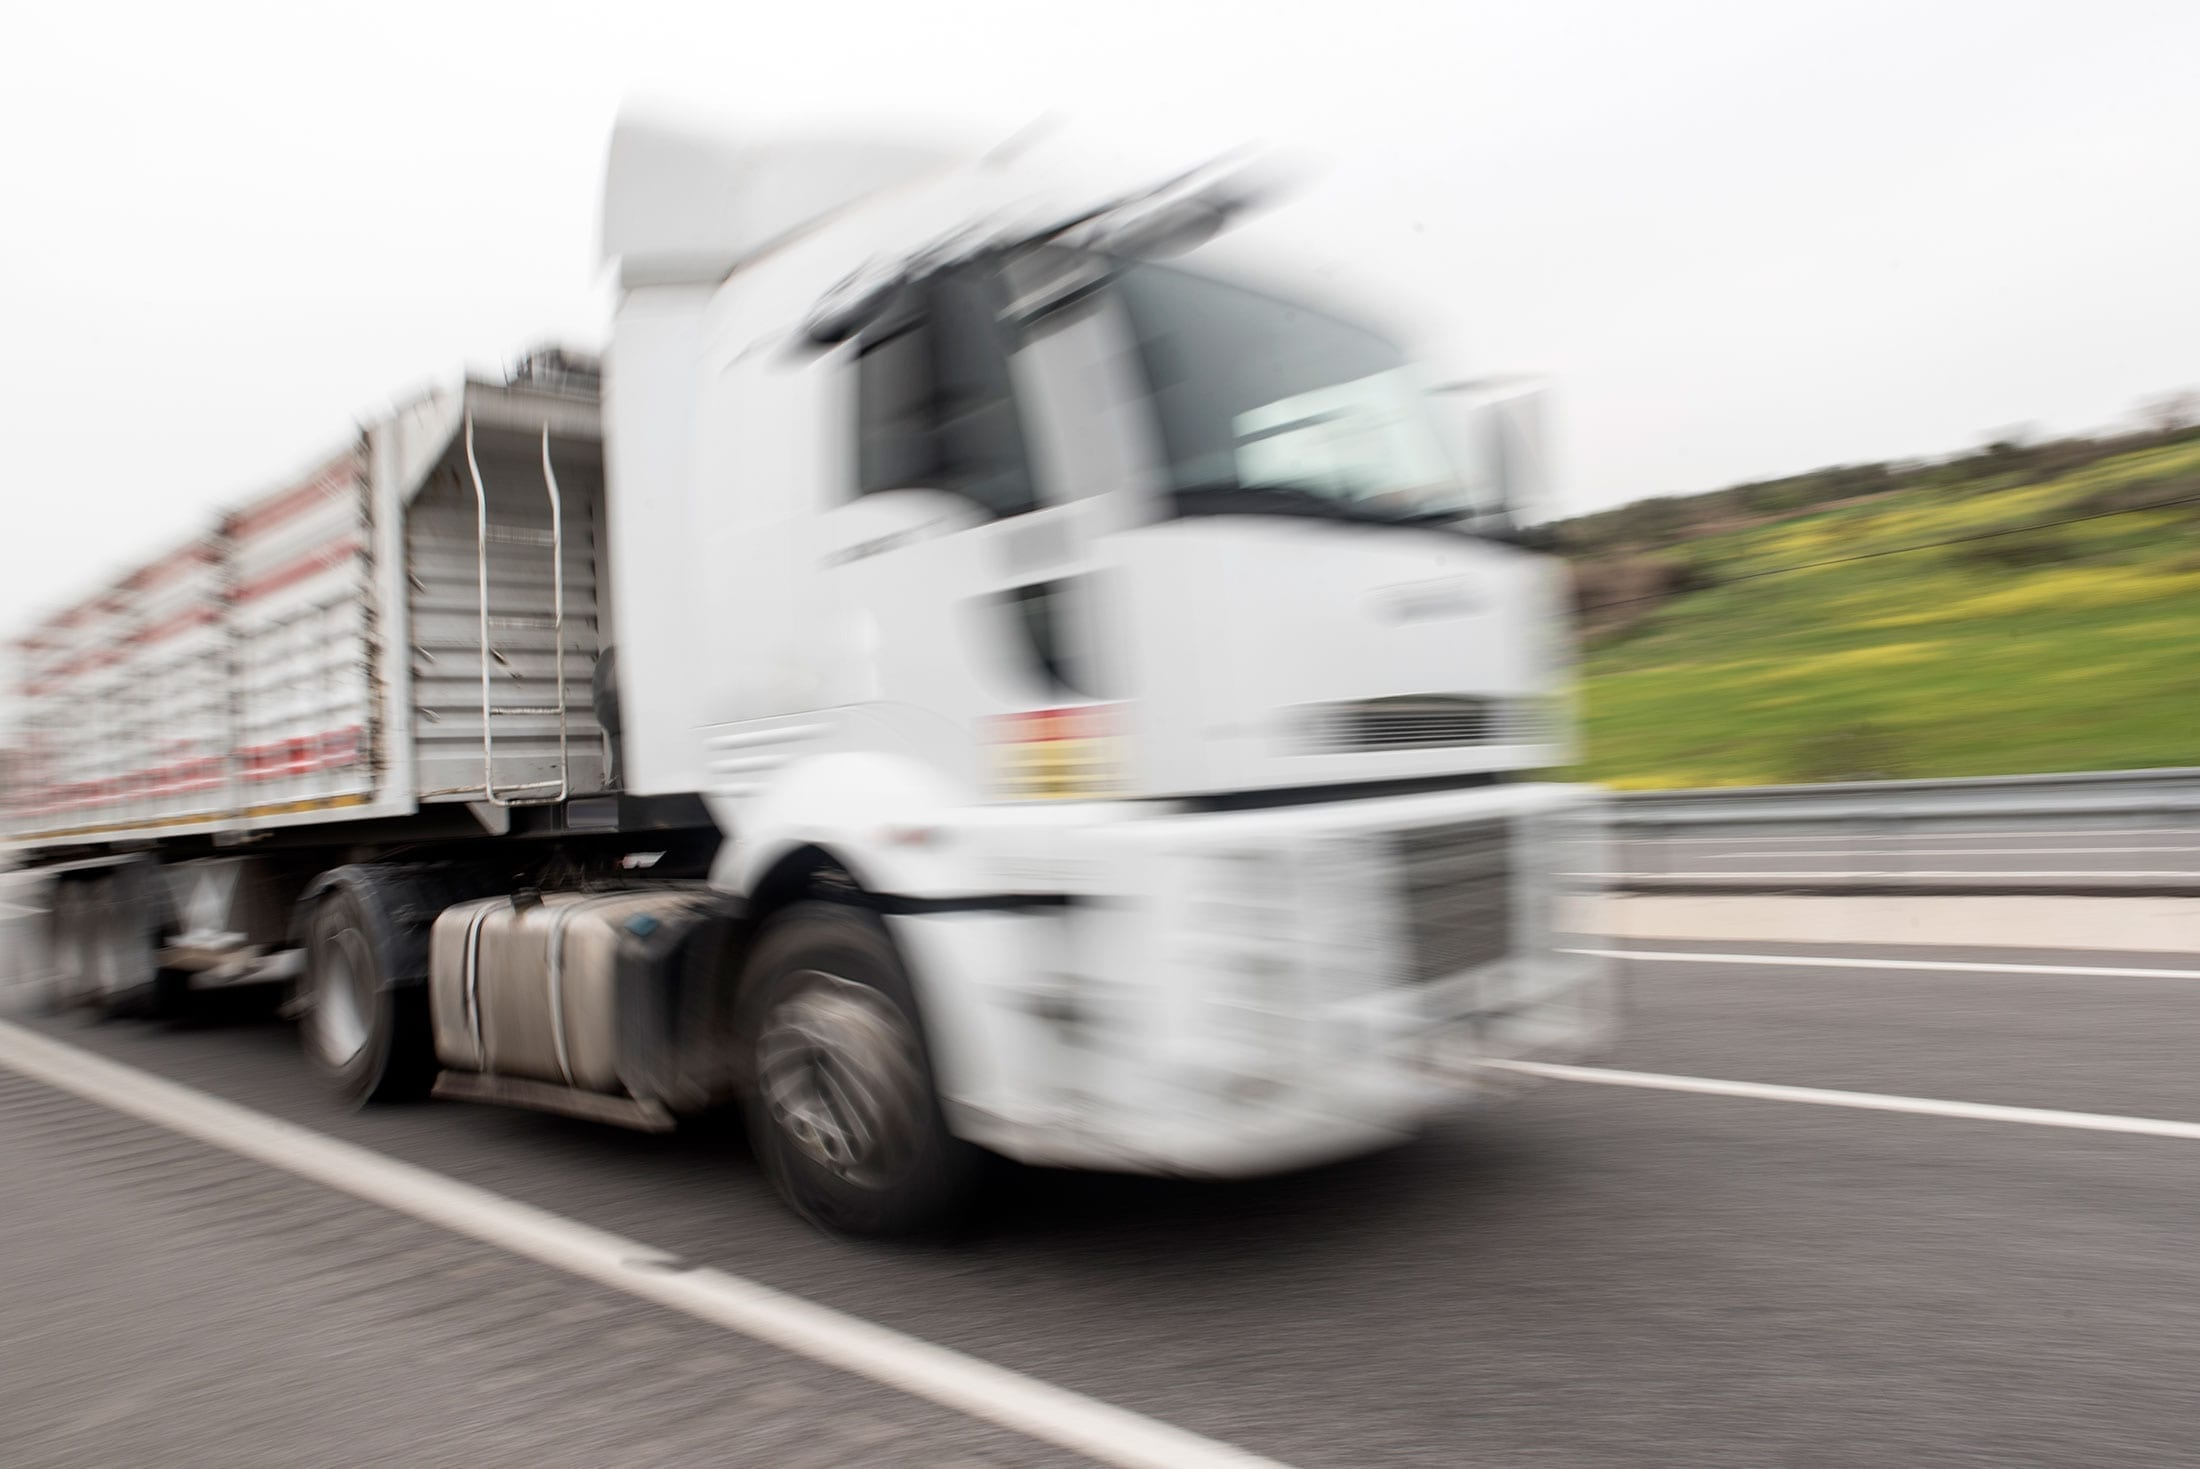 White Semi-Truck Driving On A Highway Stock Photo